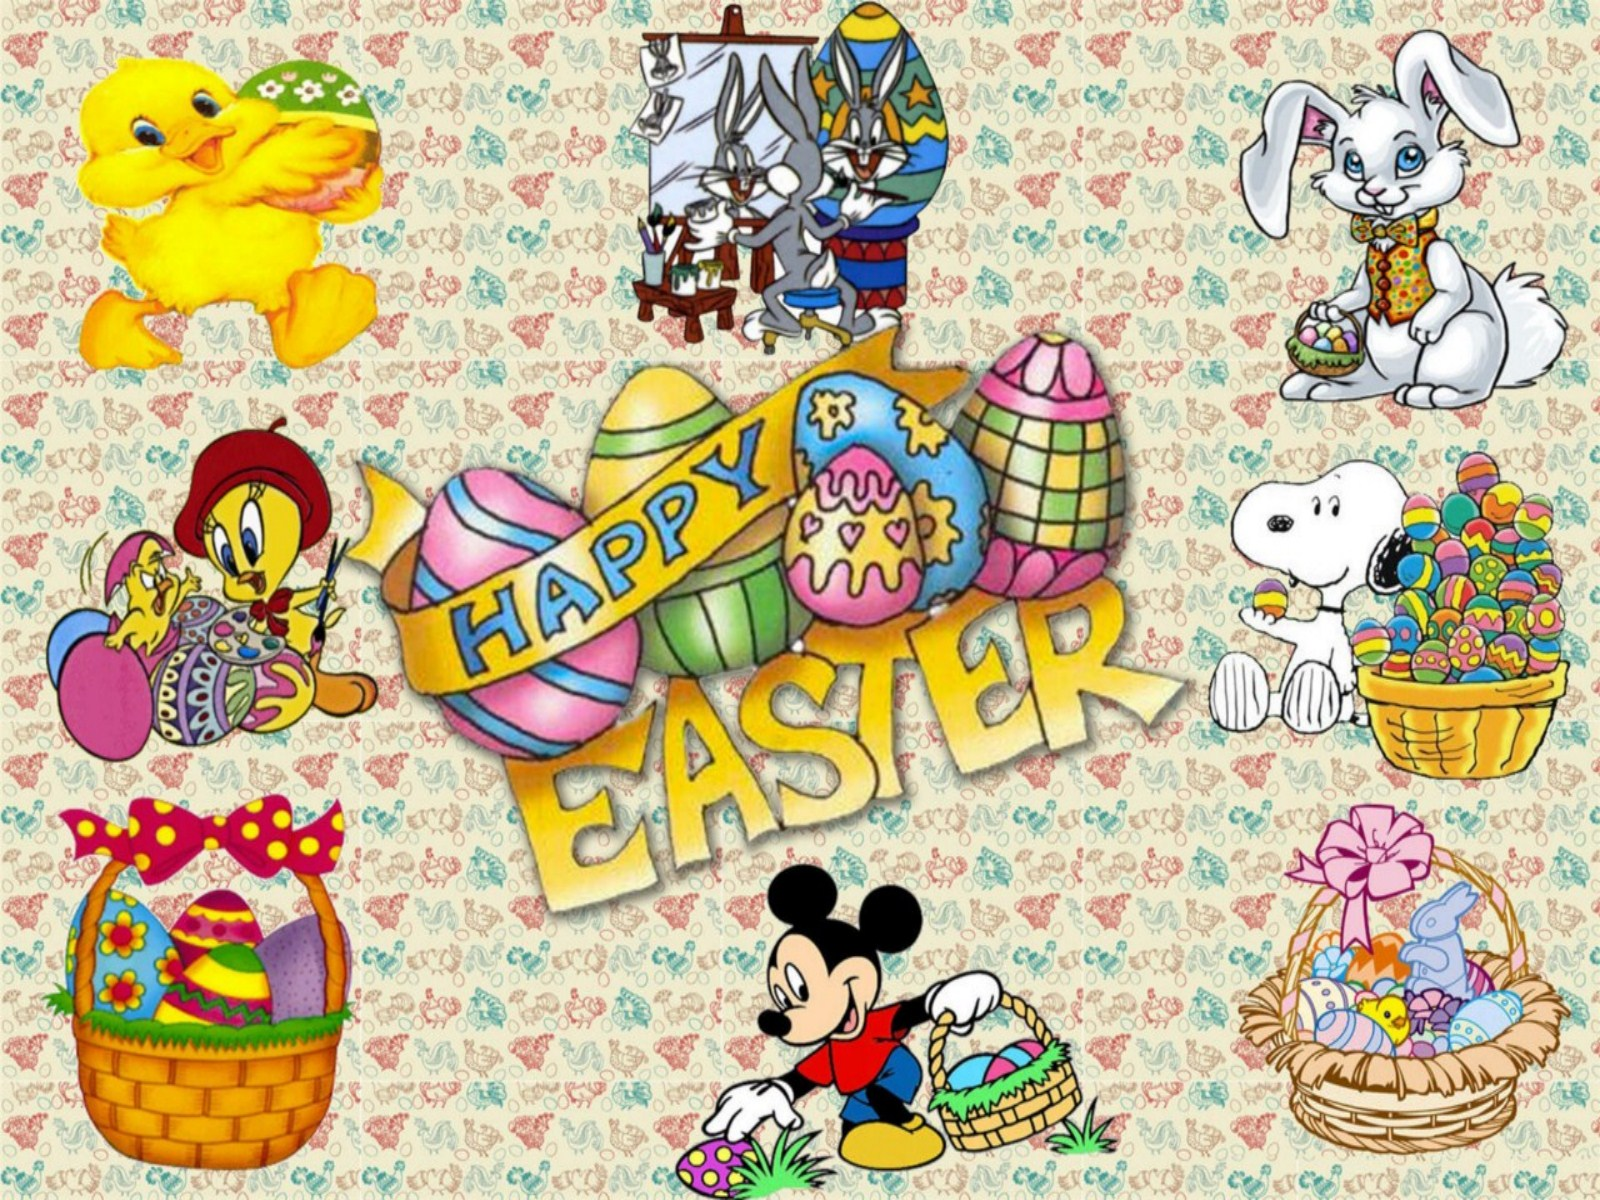 Free Disney Easter Wallpaper - WallpaperSafari